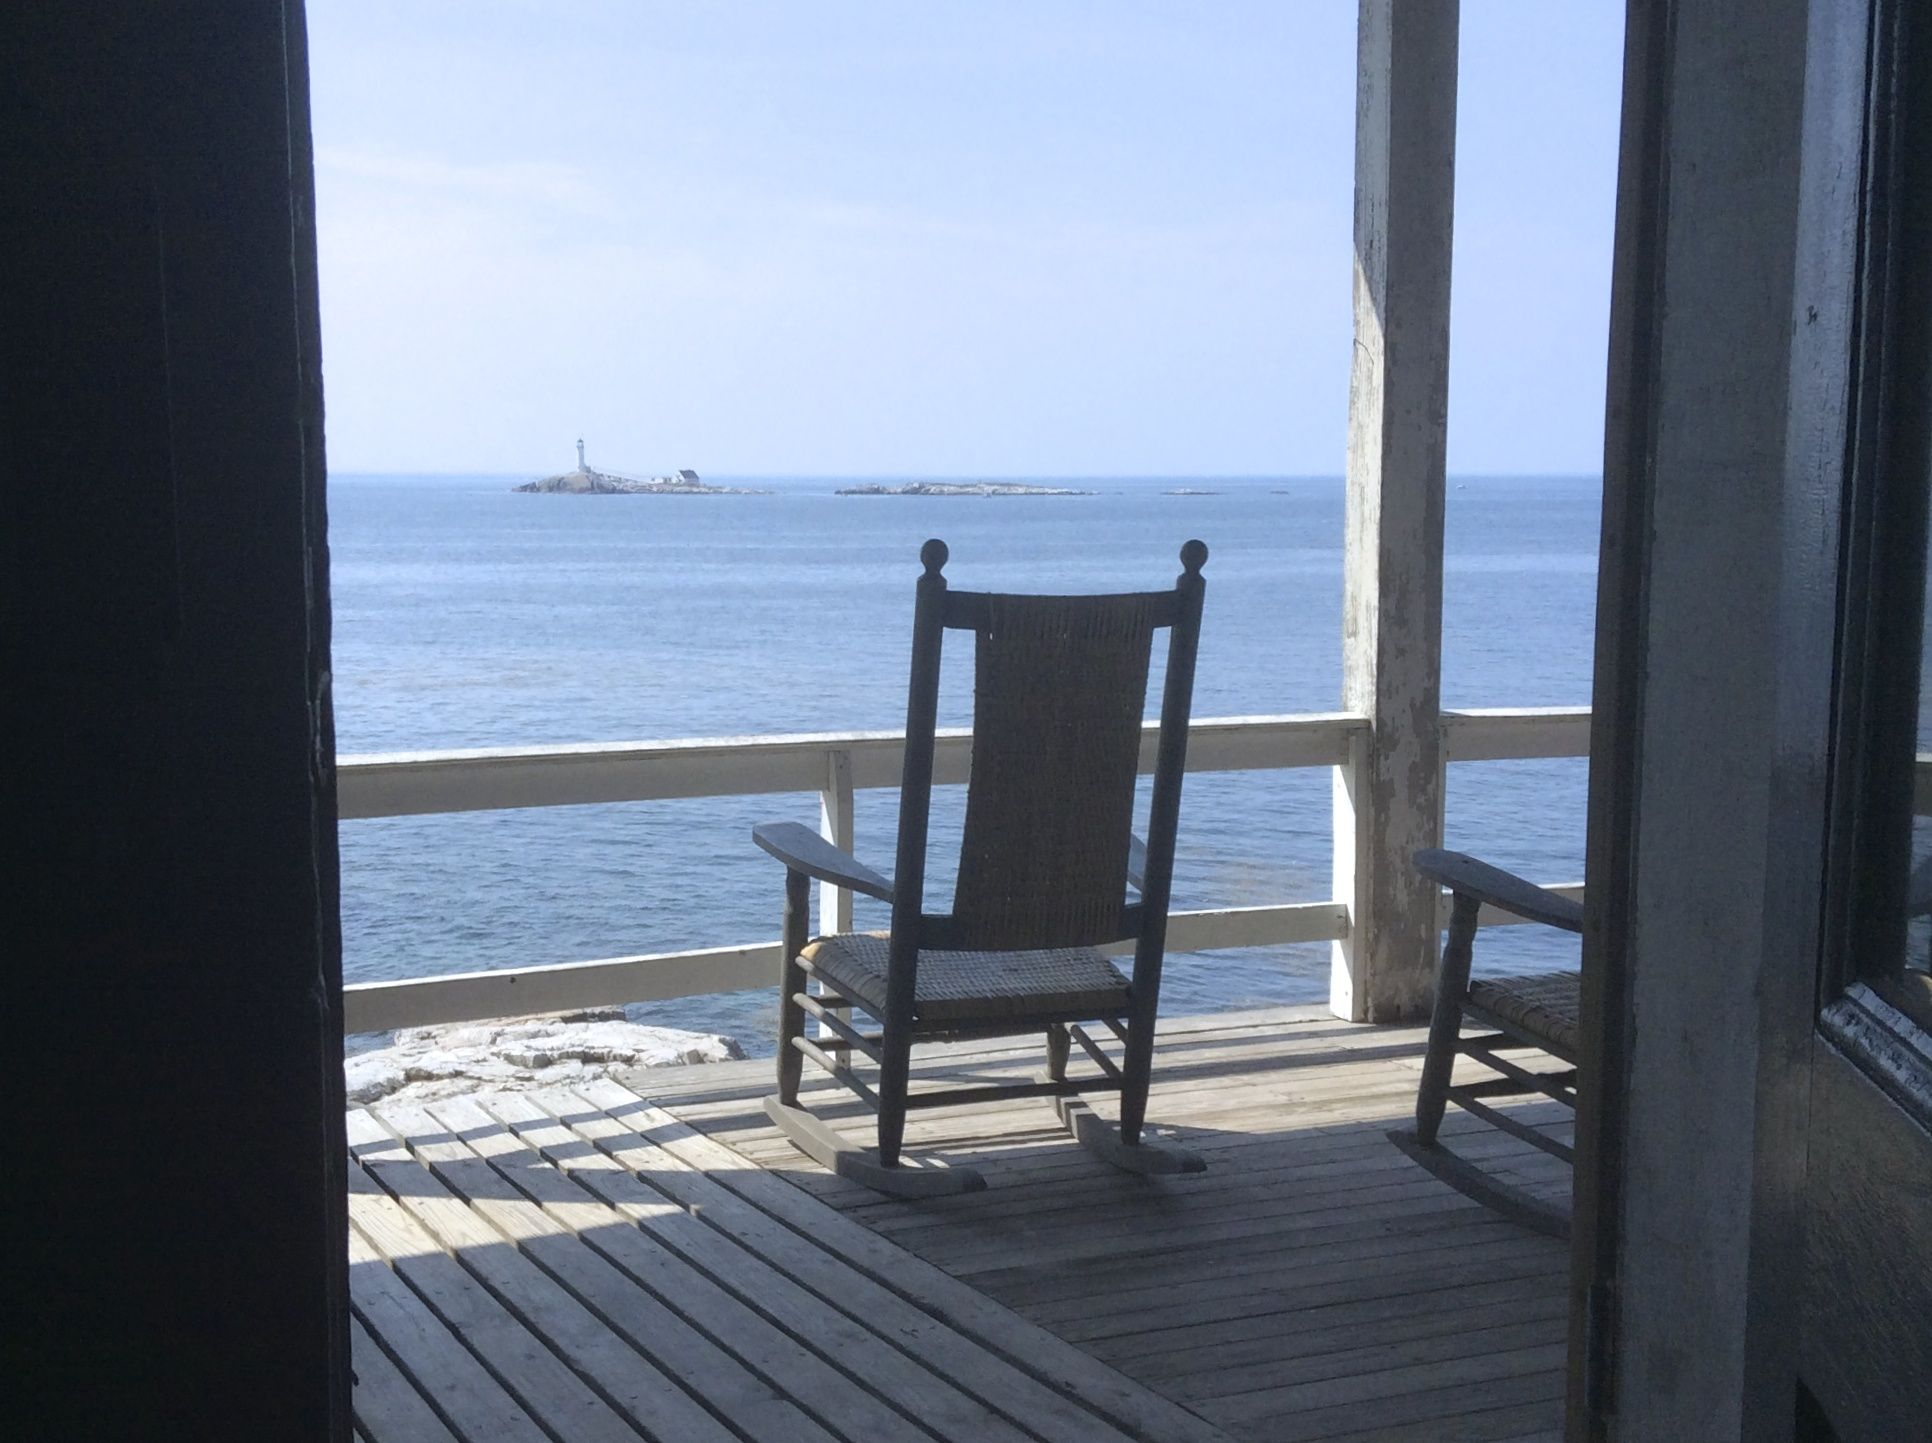 View from the porch of the Oceanic Hotel at Star Island